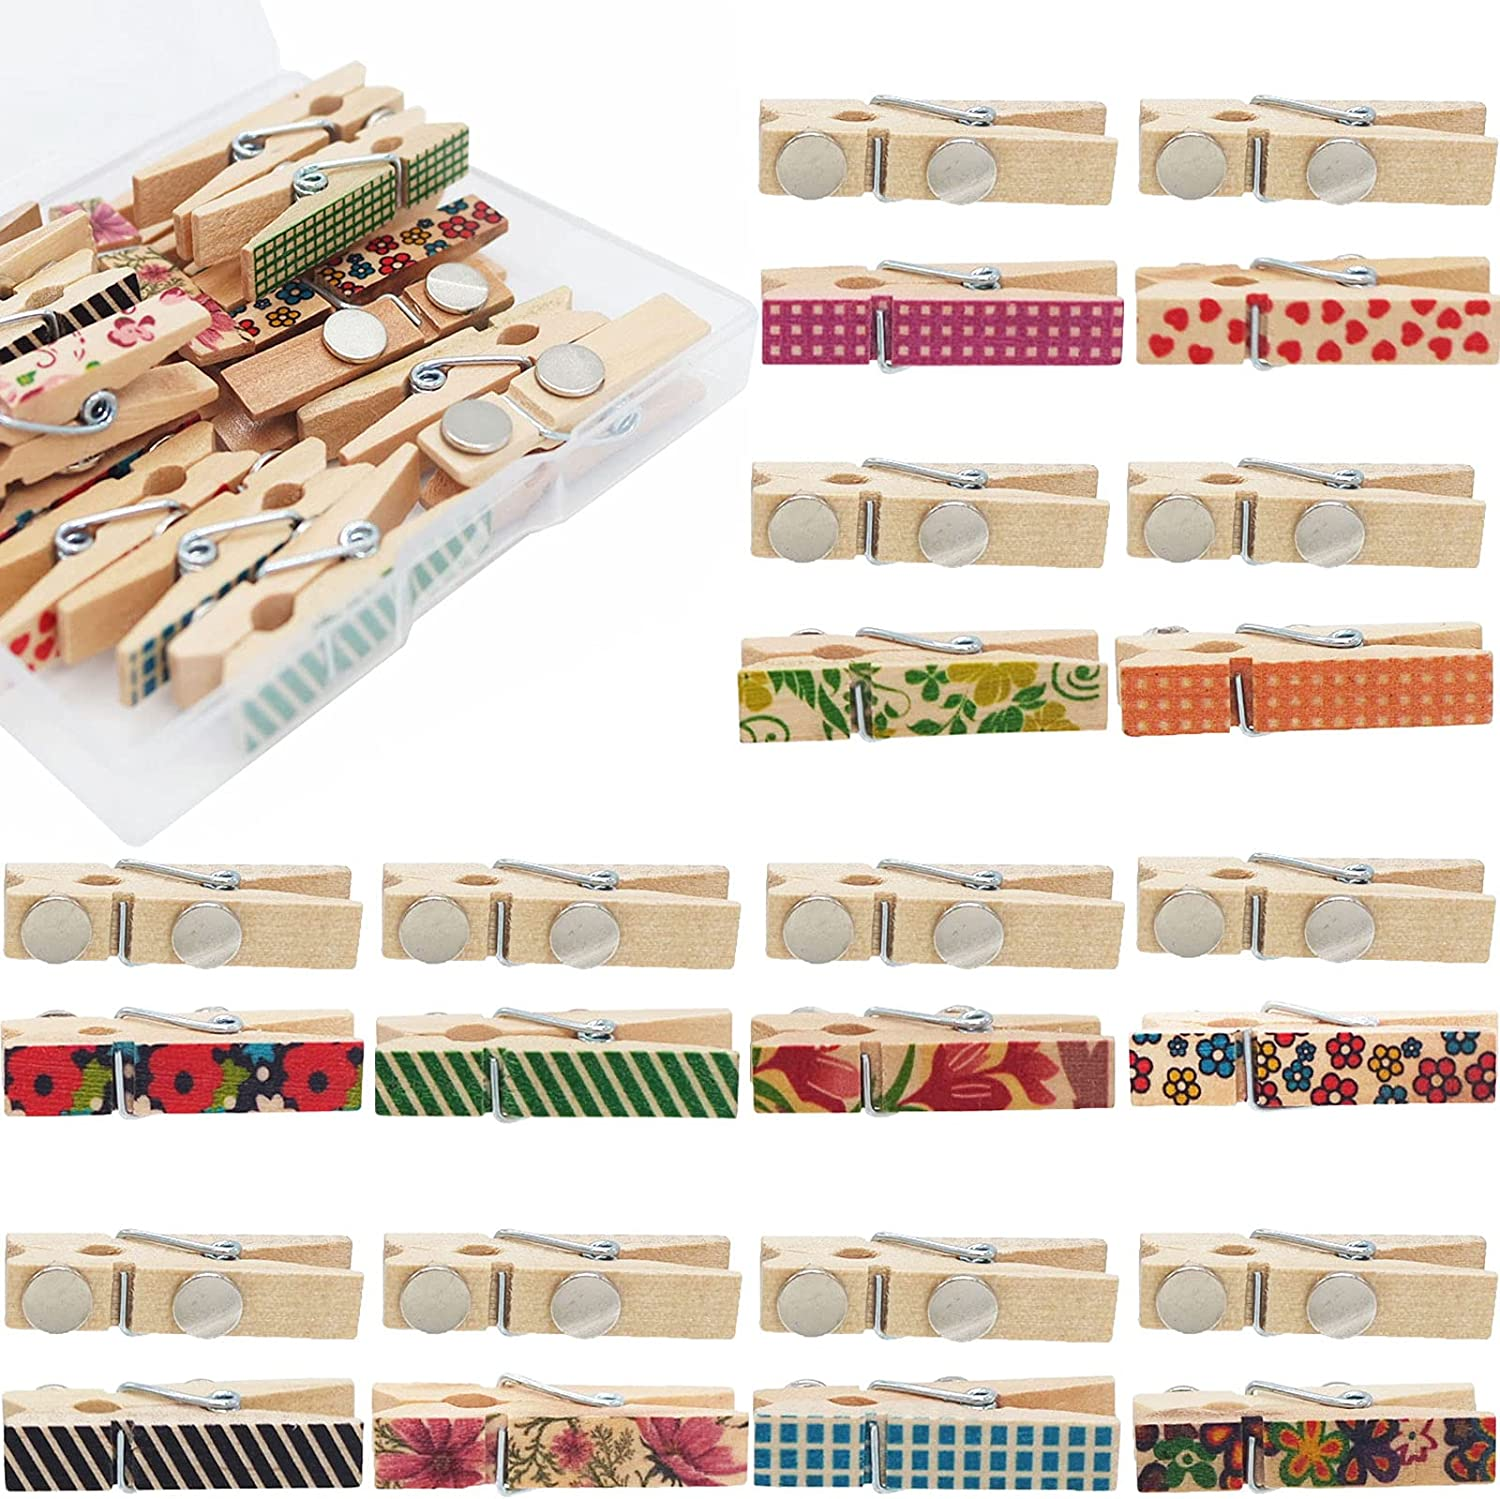 20 Pieces Decorative Magnetic Clips Wood Refrigerator Magnet Clips for Office School Home Use, Random Partterns (Color 1)